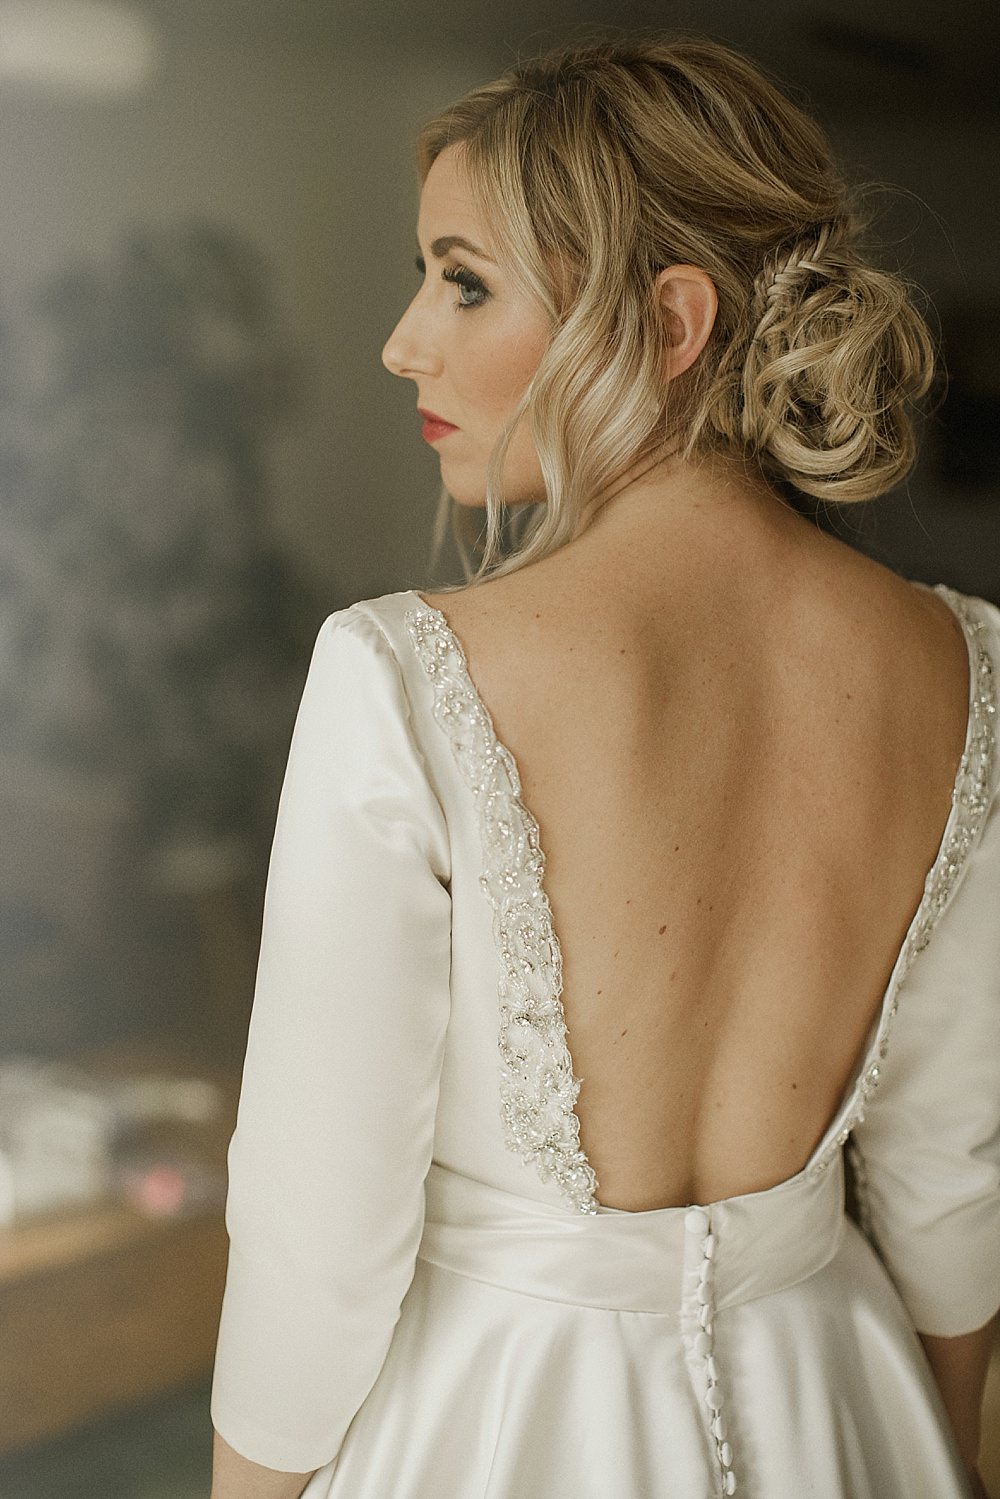 Bride Bridal Dress Gown Pockets Train Belt Low Back Sleeves Modern Chic Abbeydale Picture House Wedding We Are Da Silva